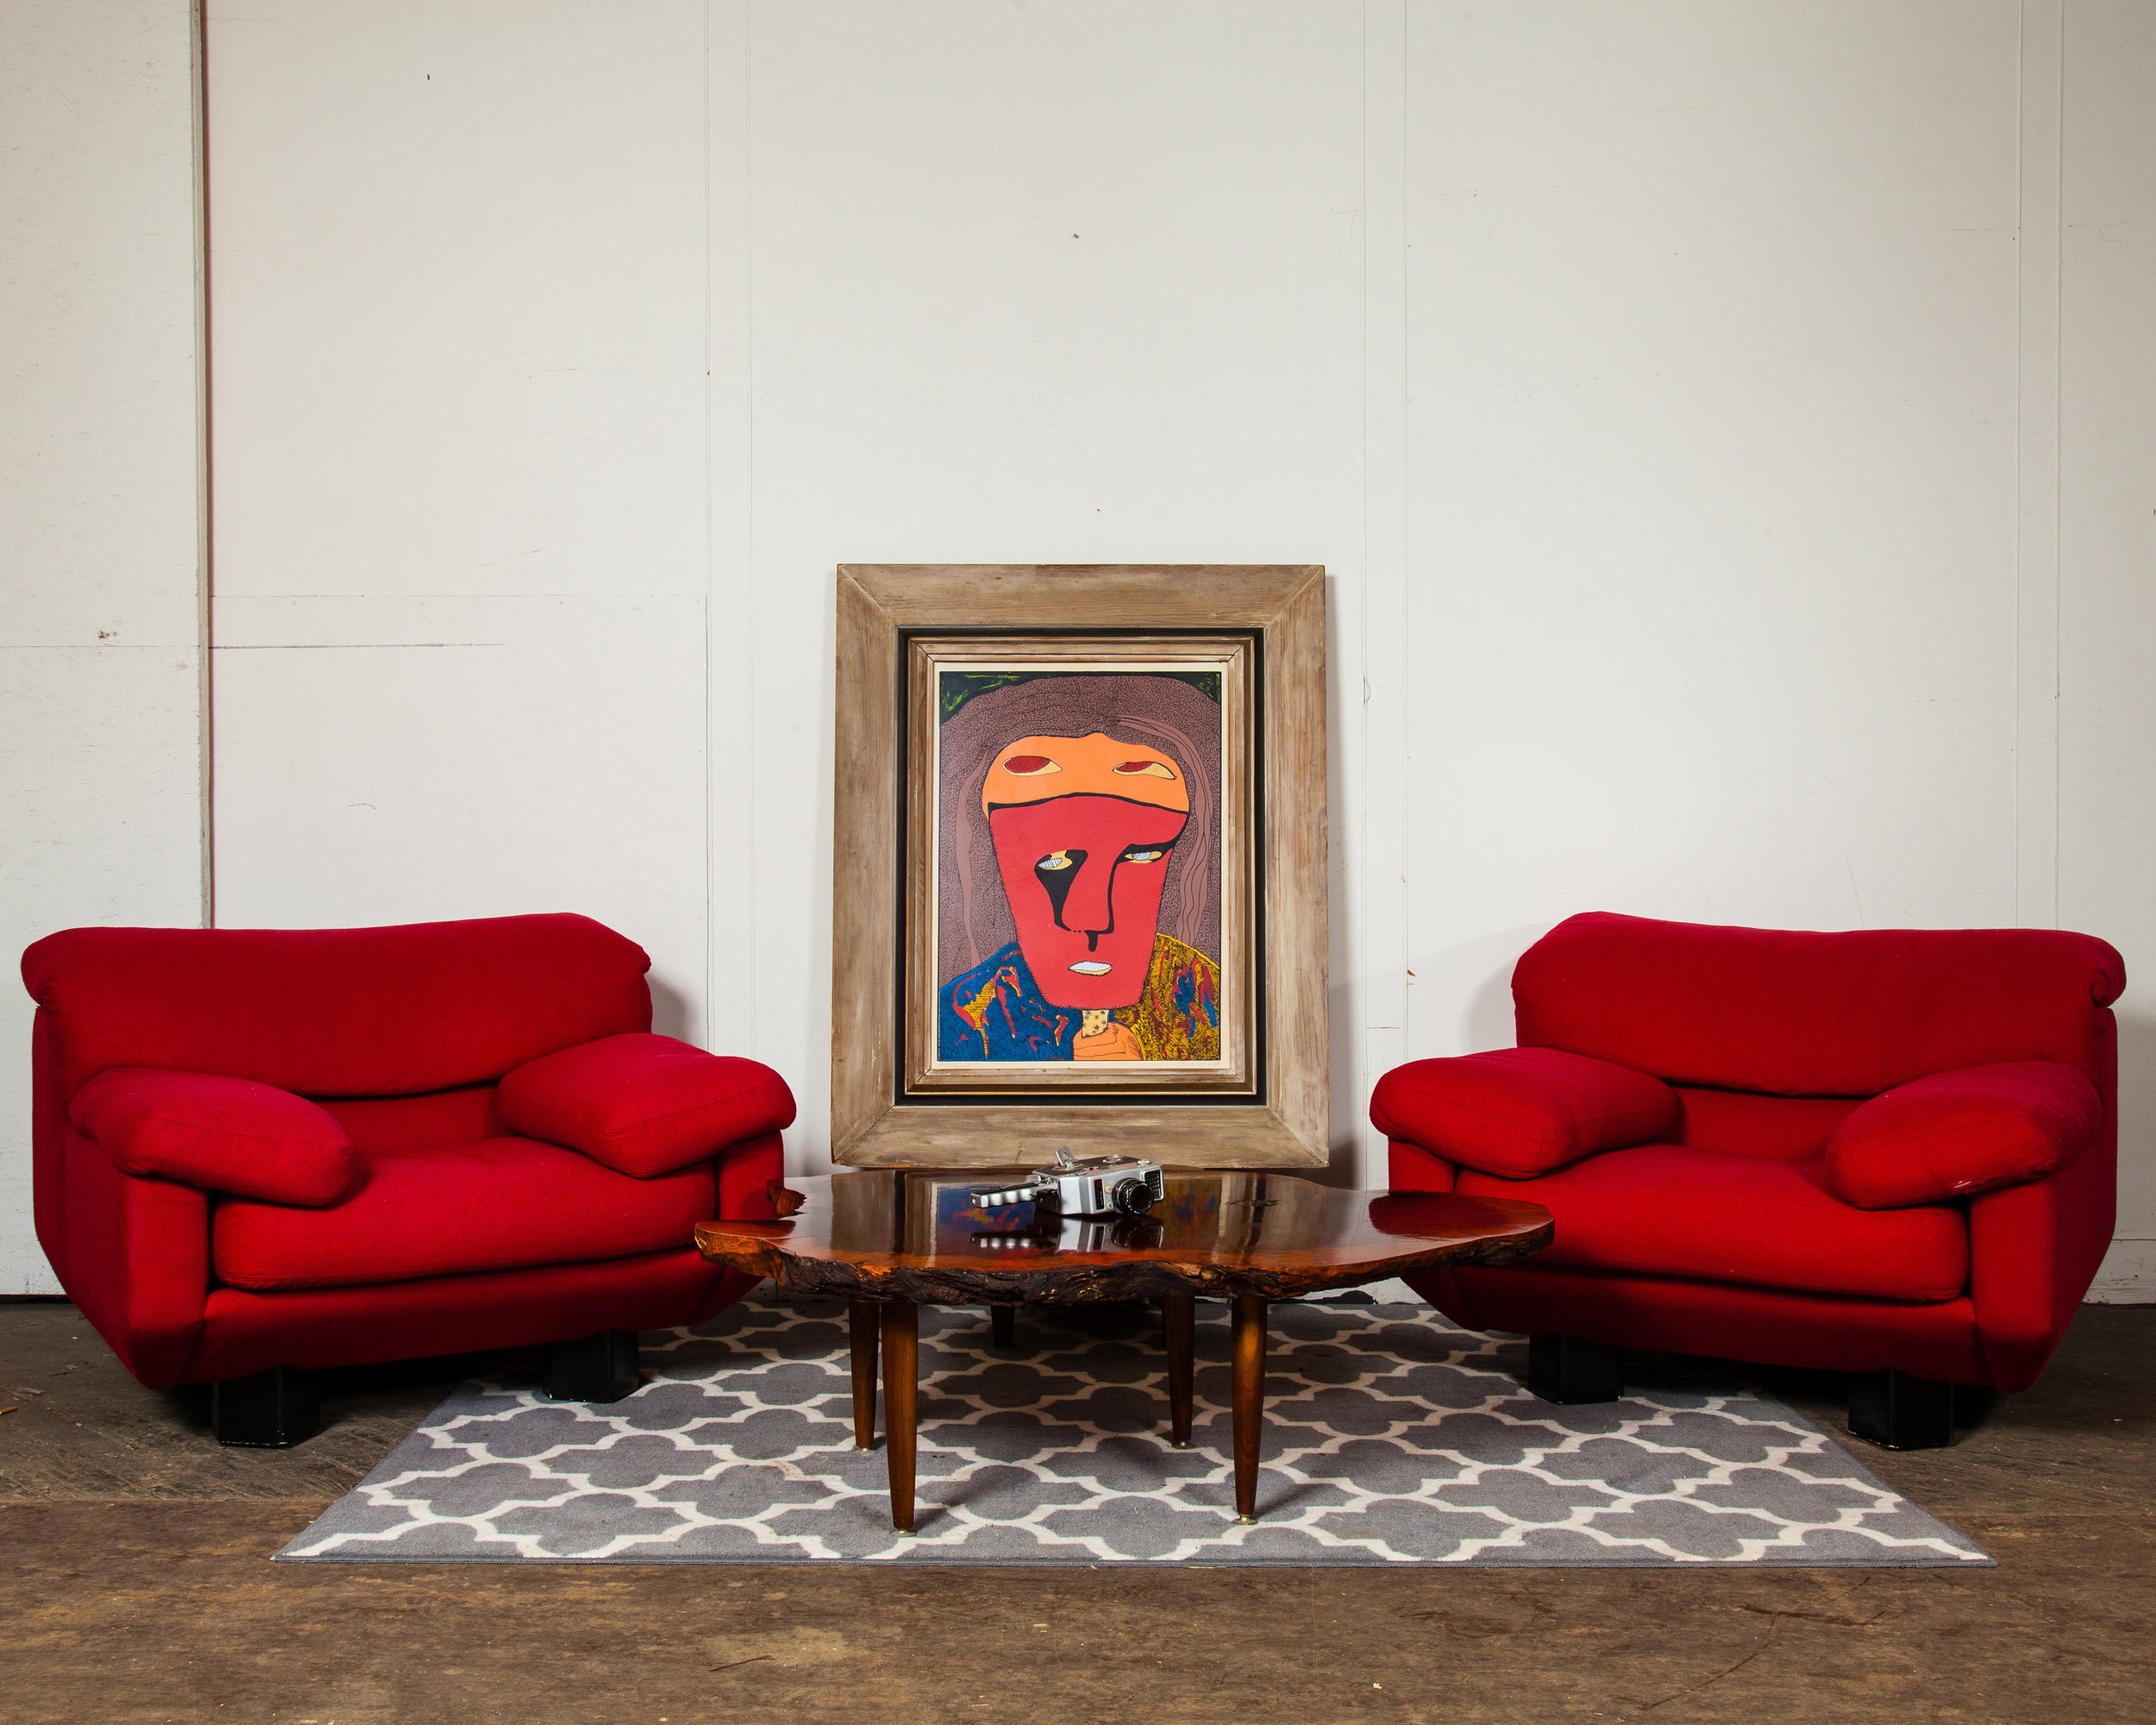 Nothing says love like  red chairs  in a cozy setting for great conversation.